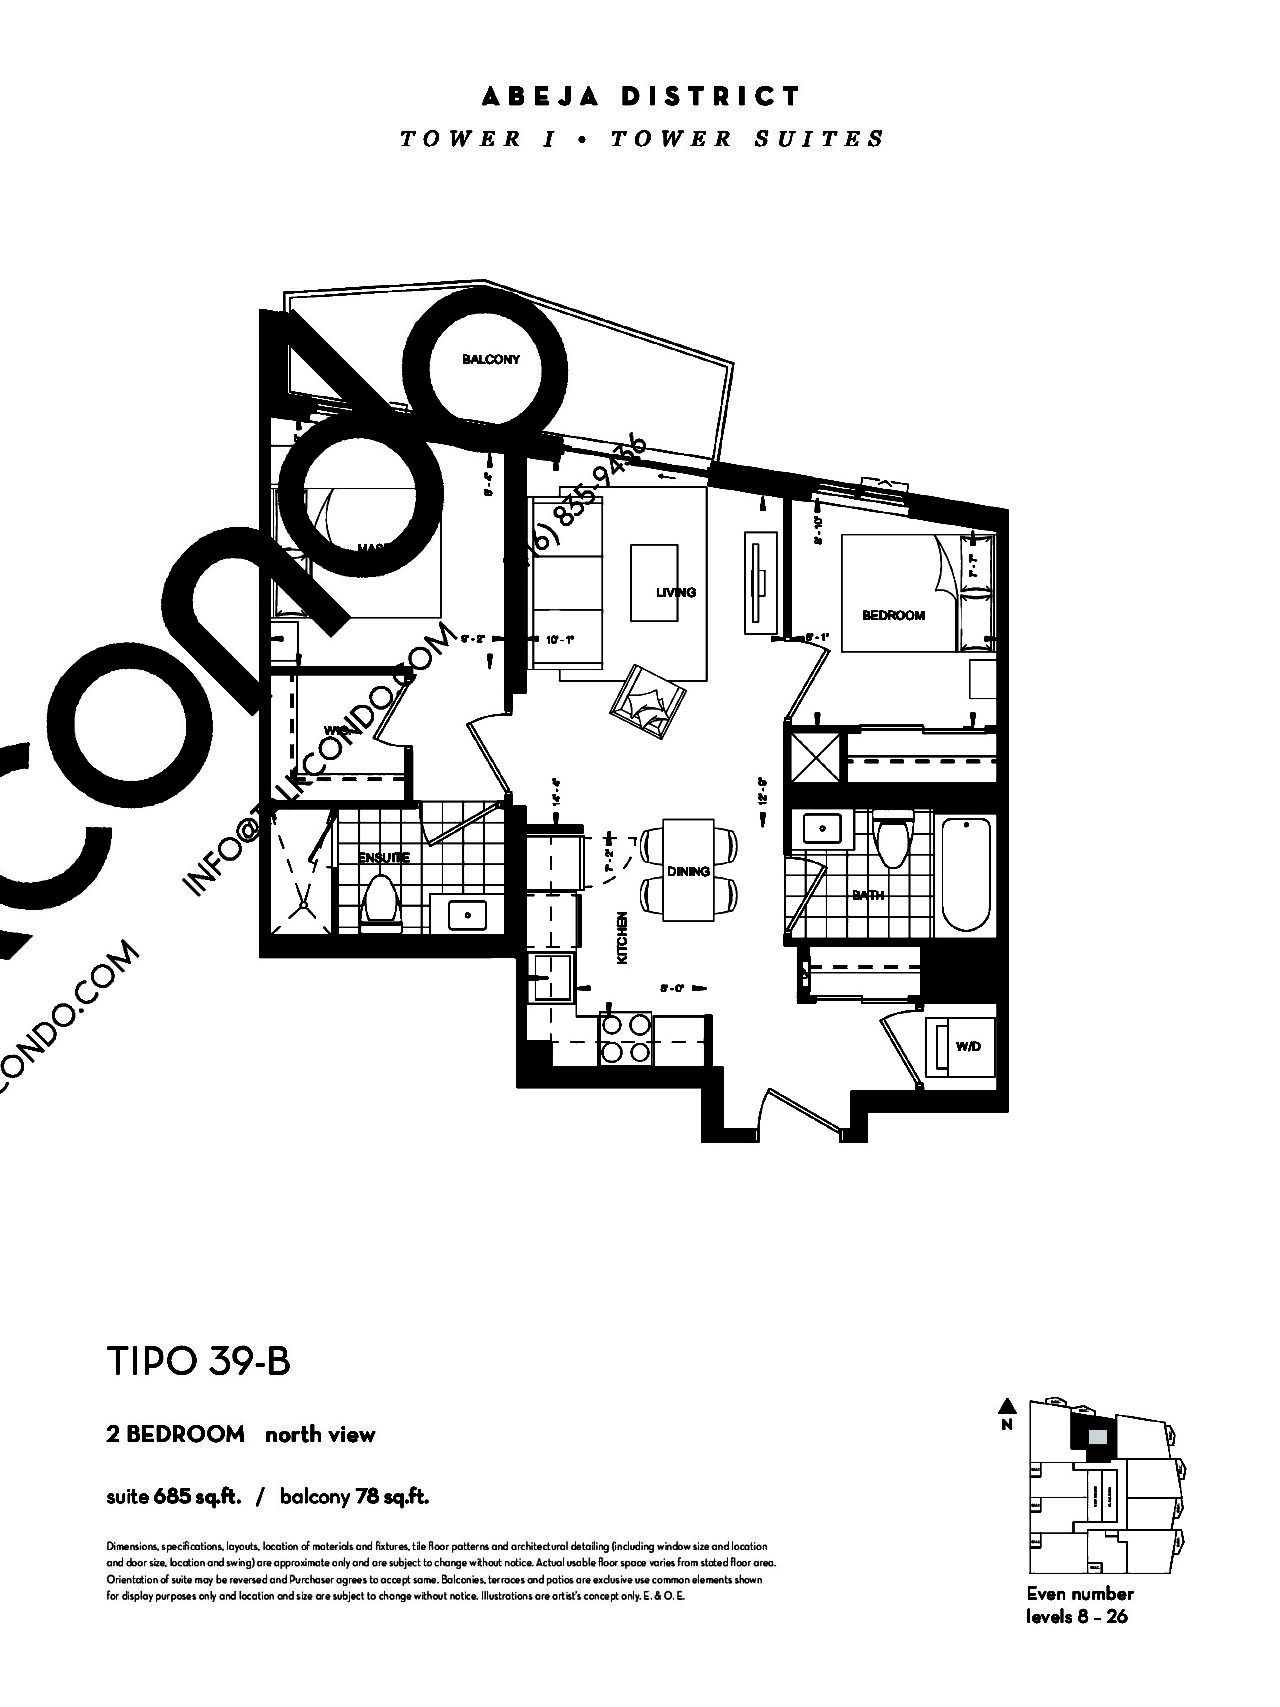 TIPO 39-B (Tower) Floor Plan at Abeja District Condos - 685 sq.ft